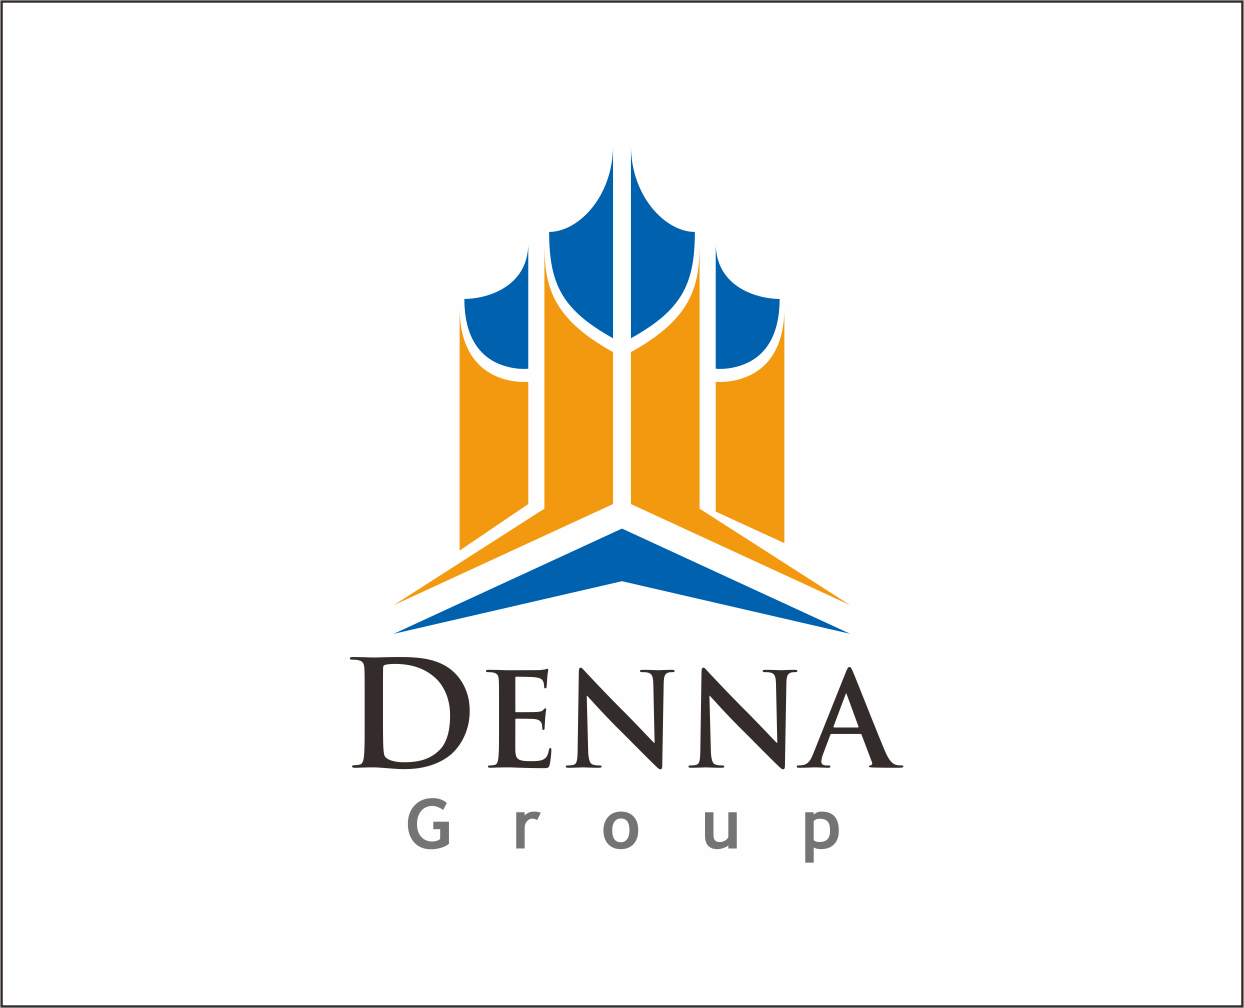 Logo Design by Armada Jamaluddin - Entry No. 131 in the Logo Design Contest Denna Group Logo Design.